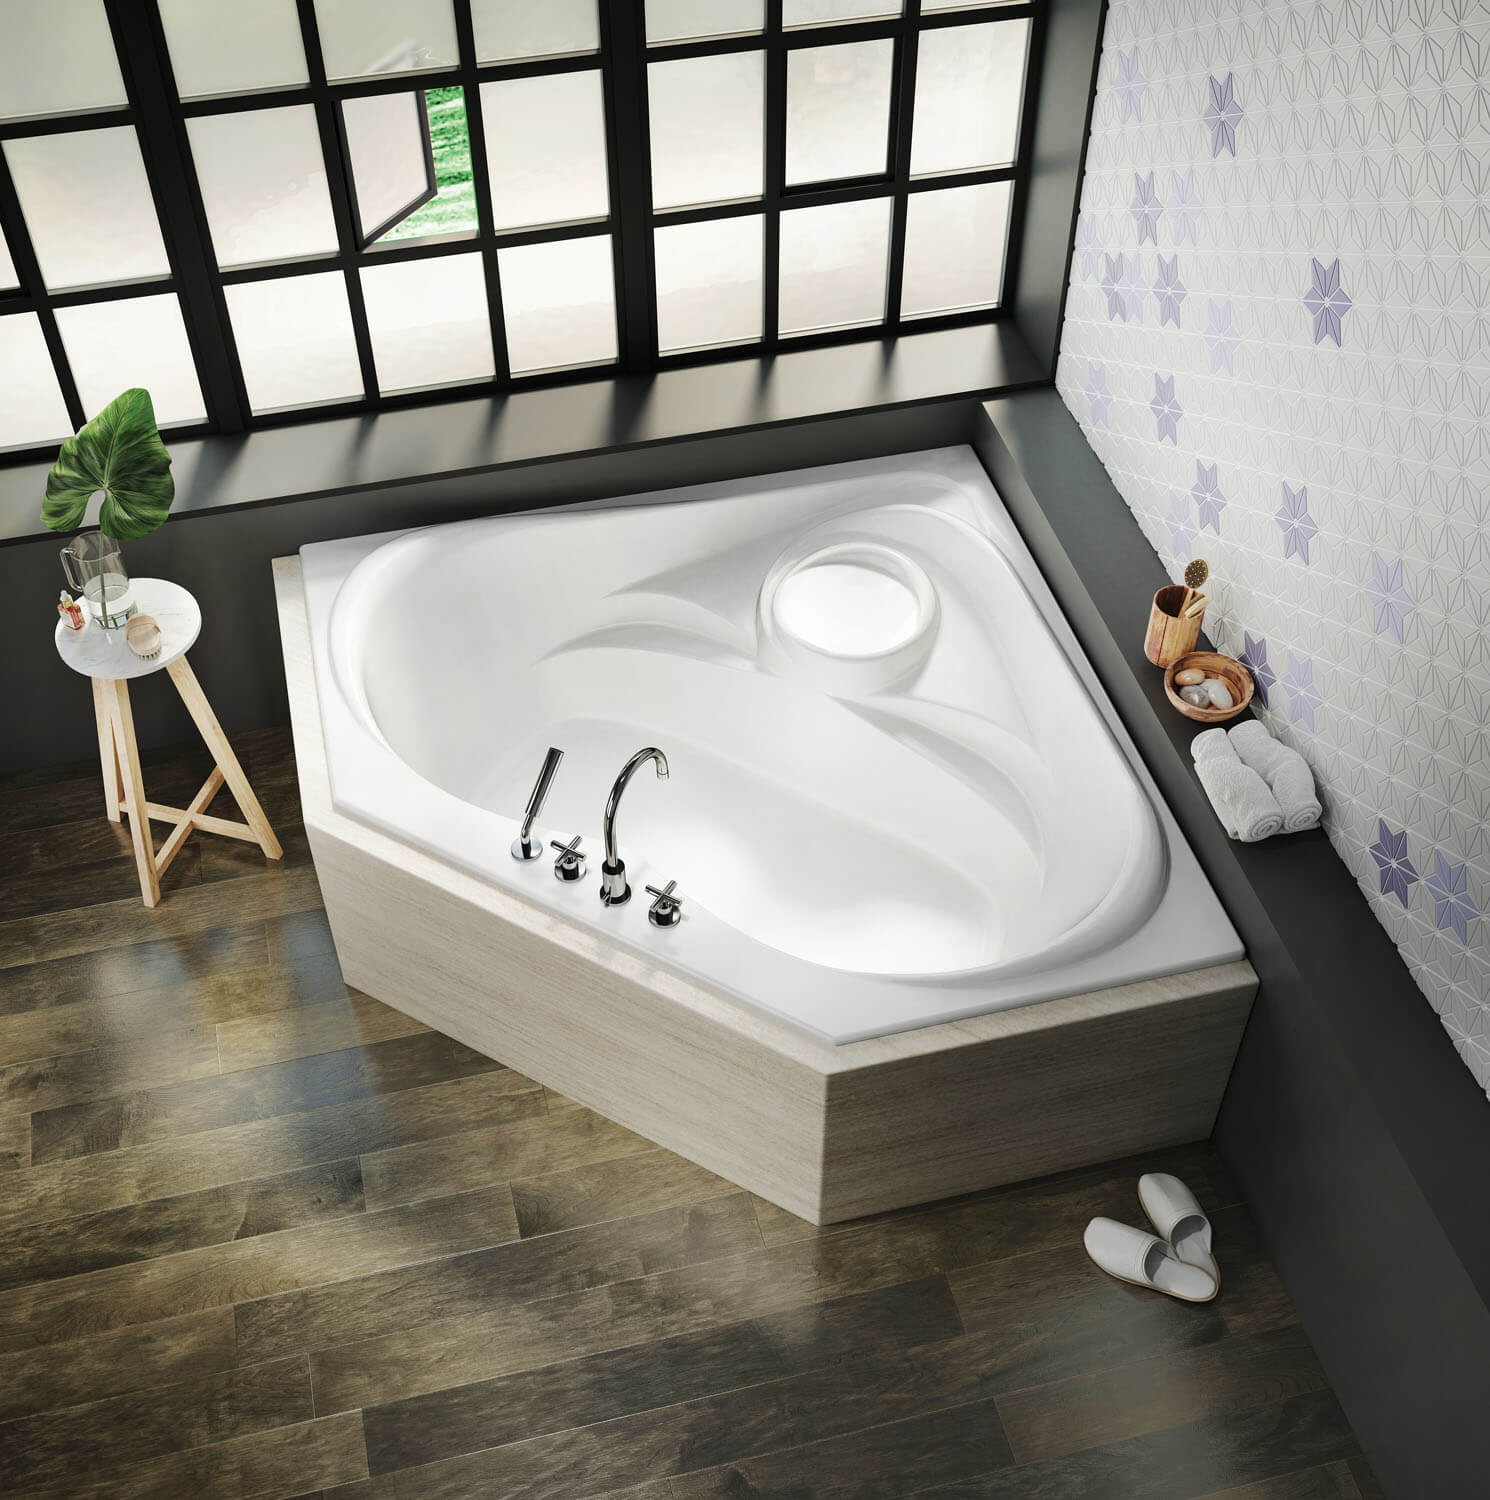 Bainultra Thermal CN2K two person large corner drop-in air jet bathtub for your modern bathroom